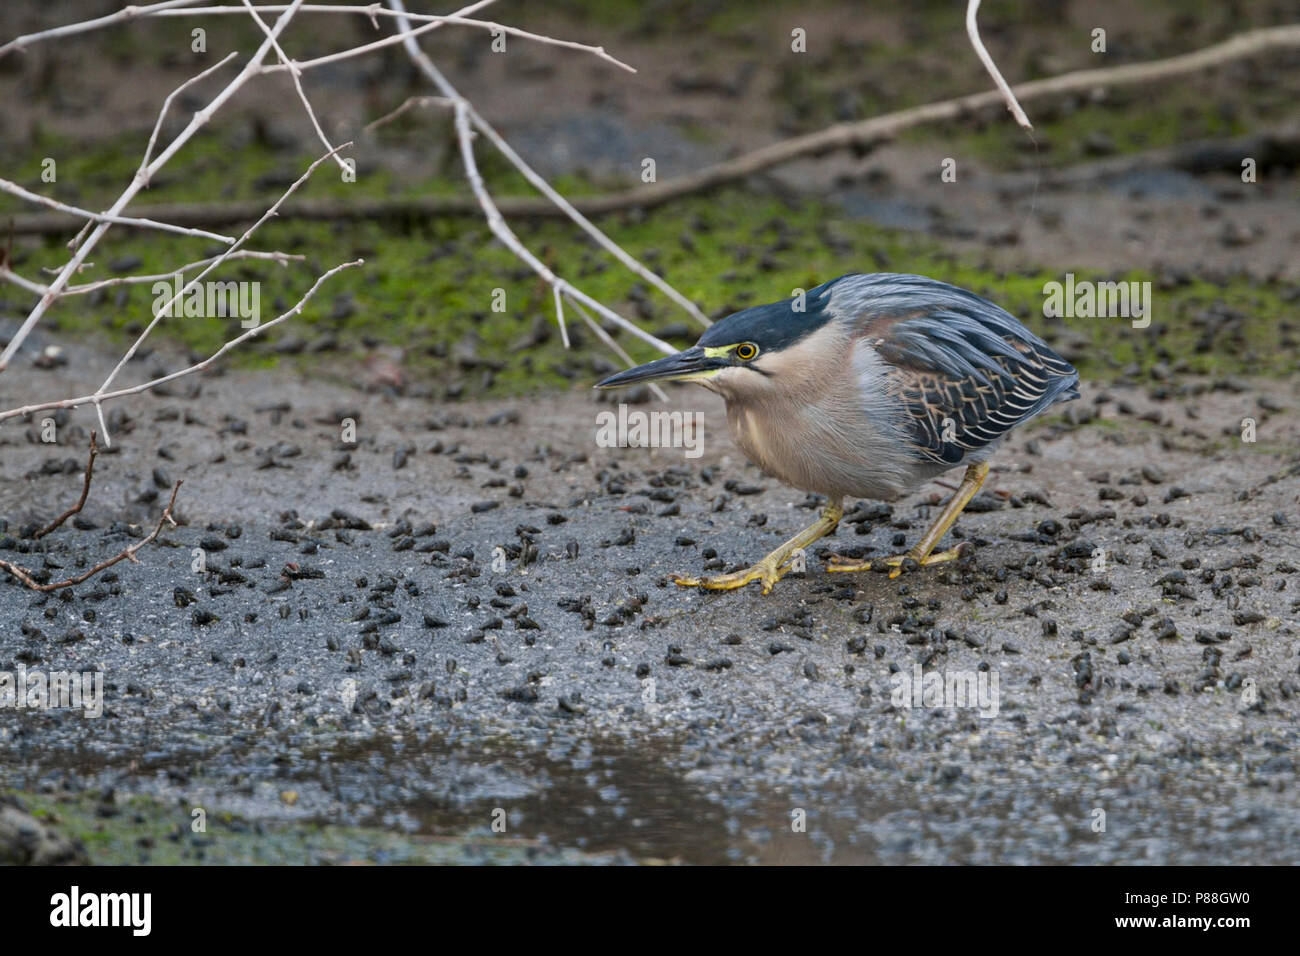 Striated Heron - Mangrovereiher - Butorides striata ssp. brevipes, Oman, adult - Stock Image